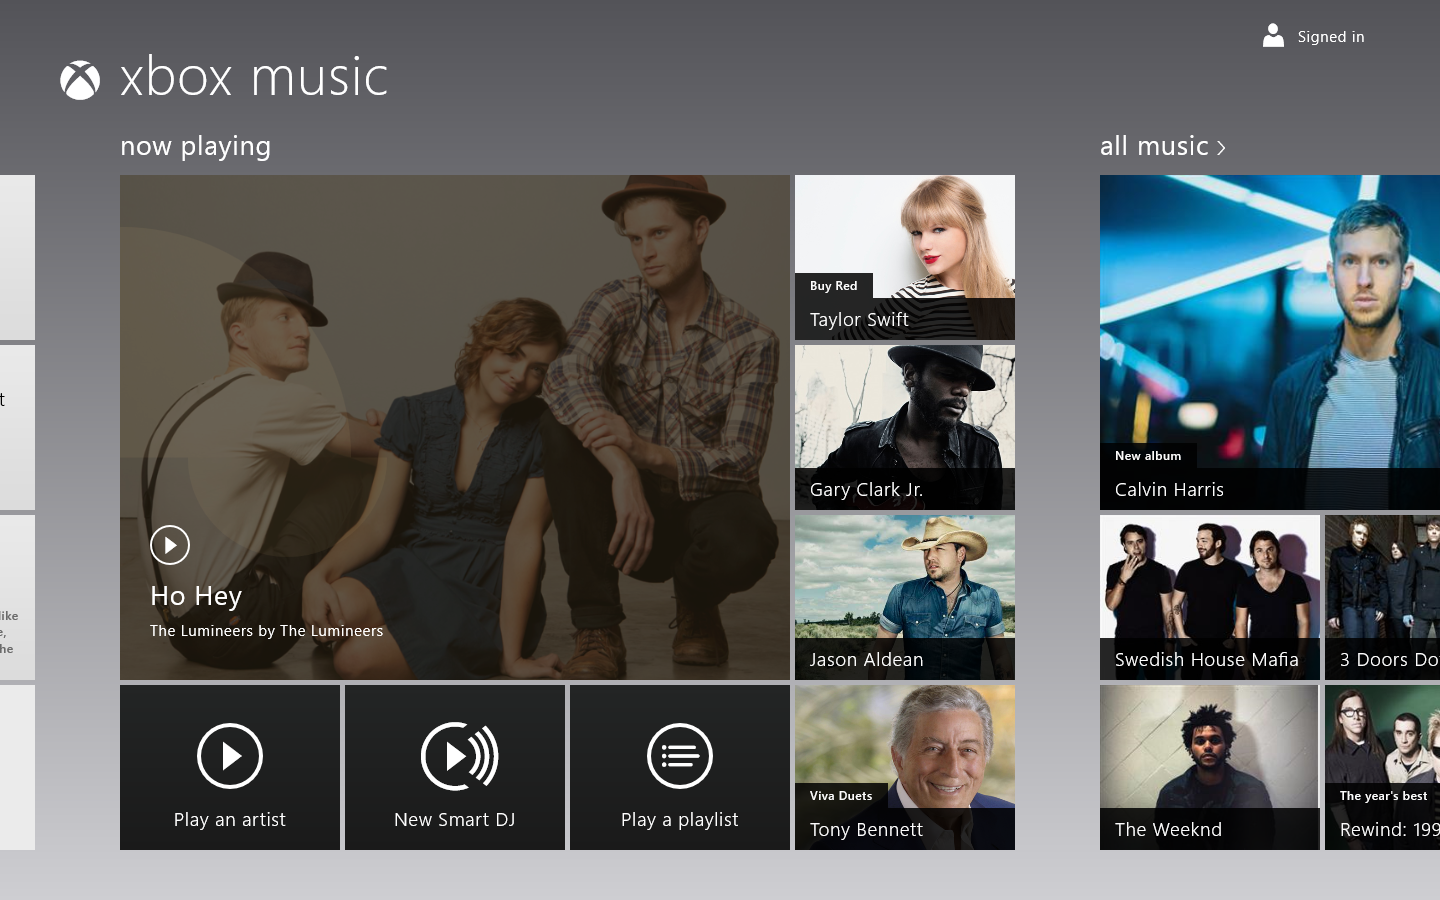 Xbox Music on Windows 8